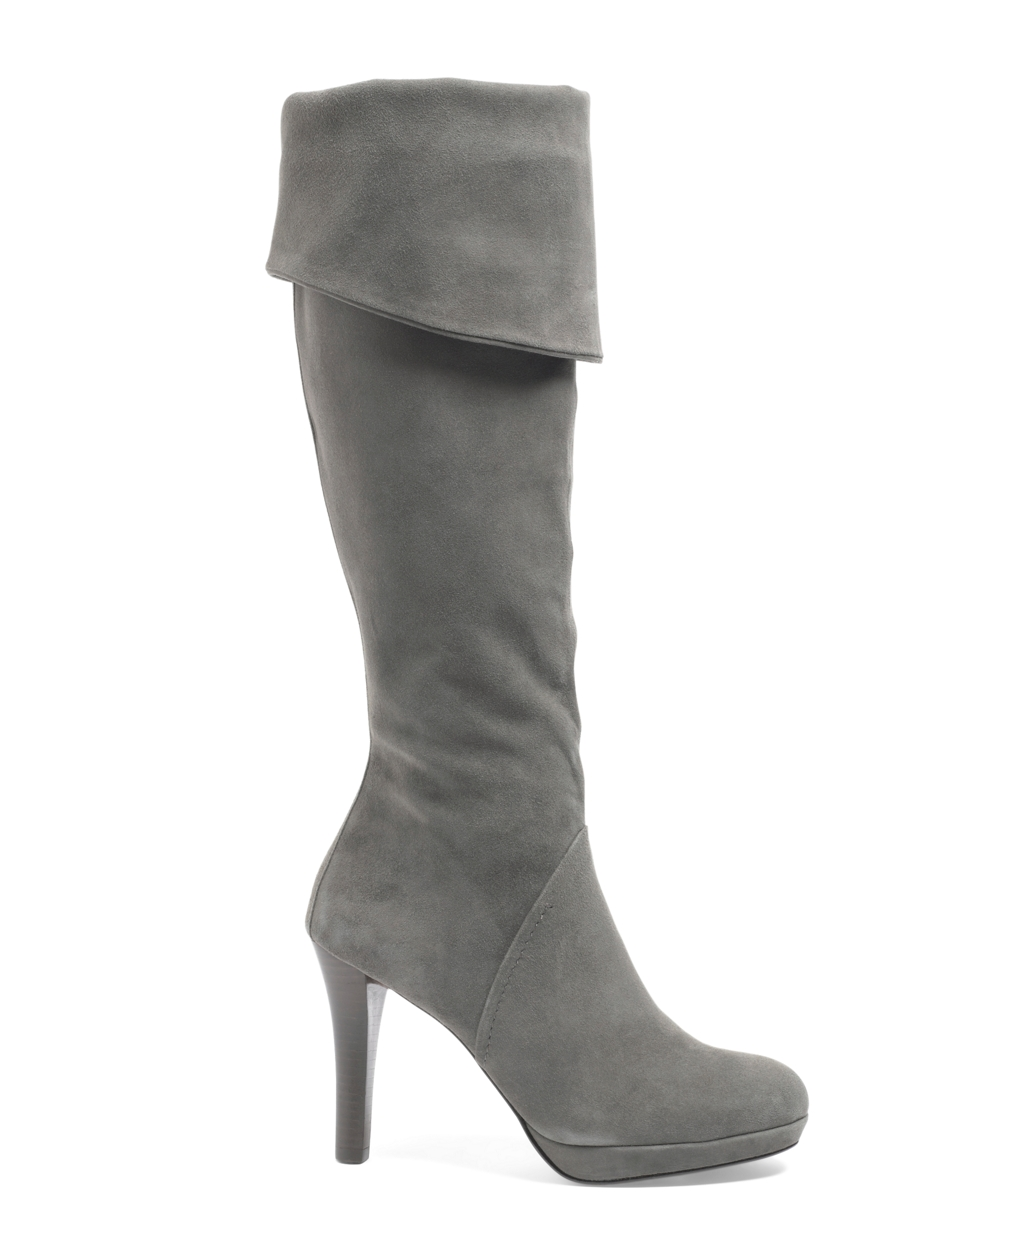 brothers knee high platform boots in gray lyst